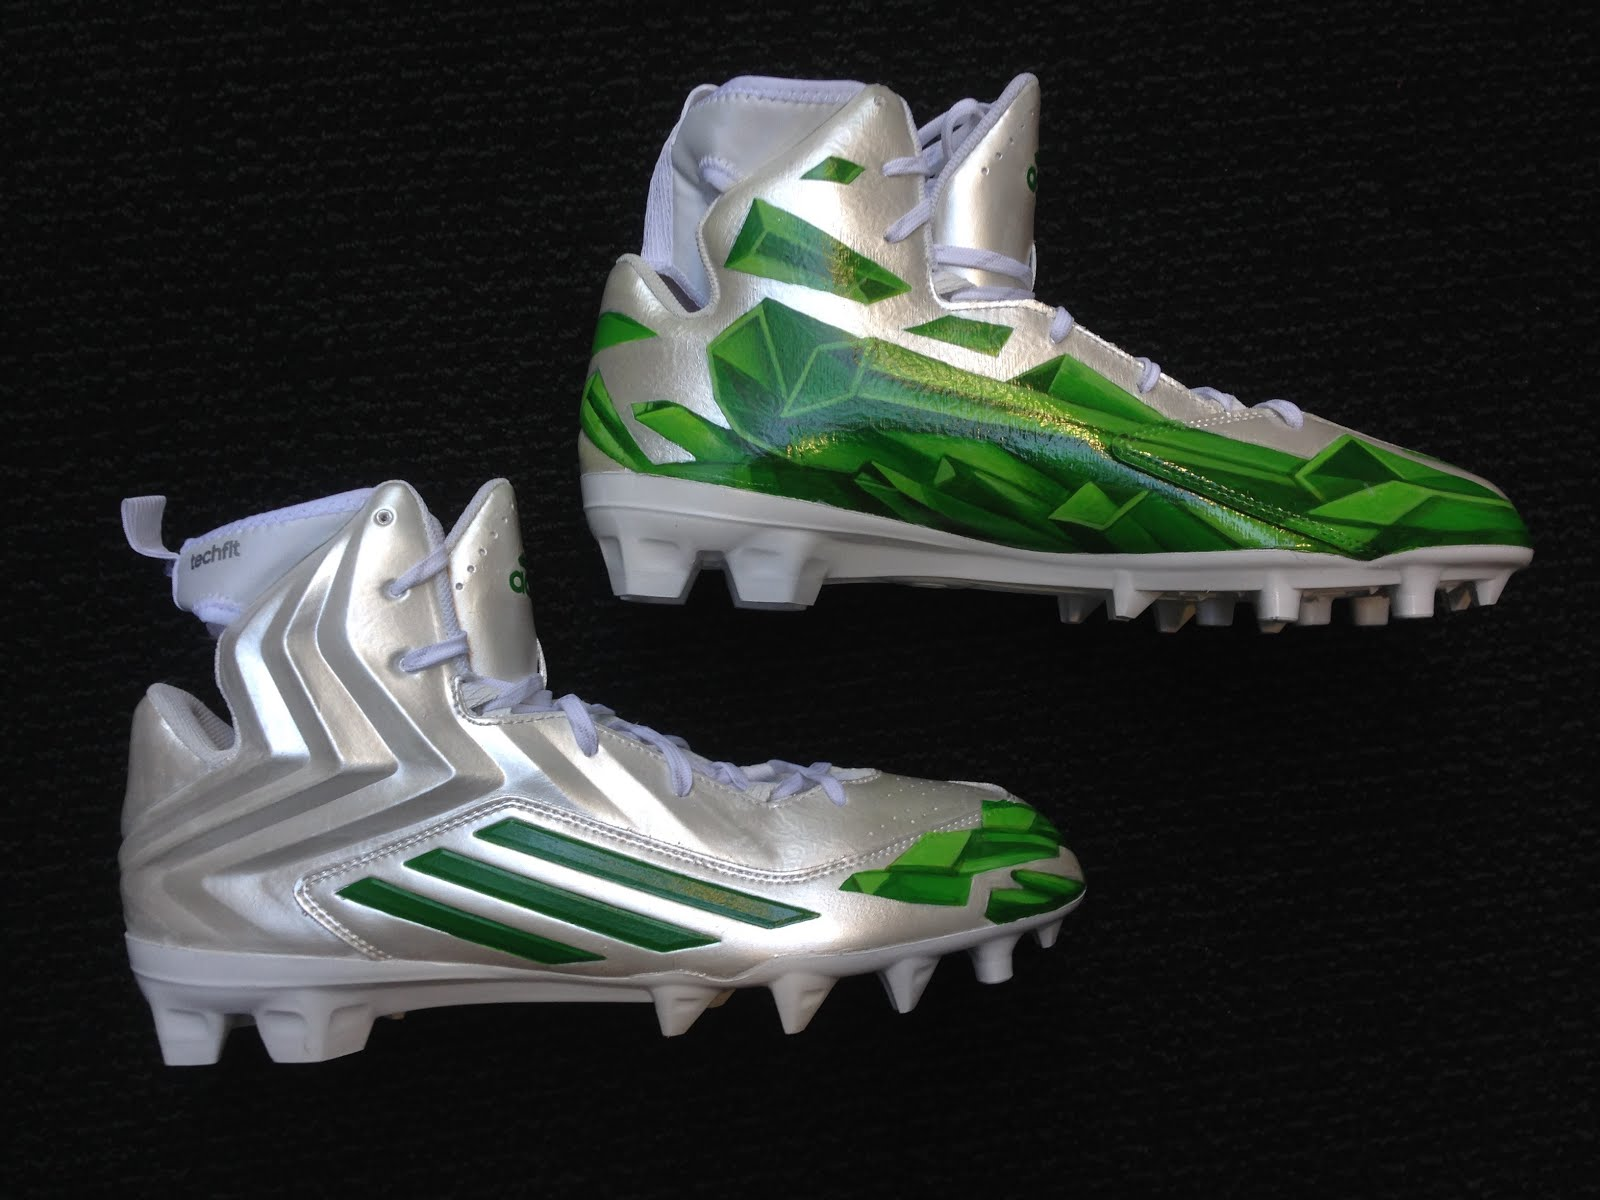 fa1492cfa6e8 Here are some process shots of me working on the Von Miller Kryptonite  cleats. These were fun to do. CBS covers the cleats